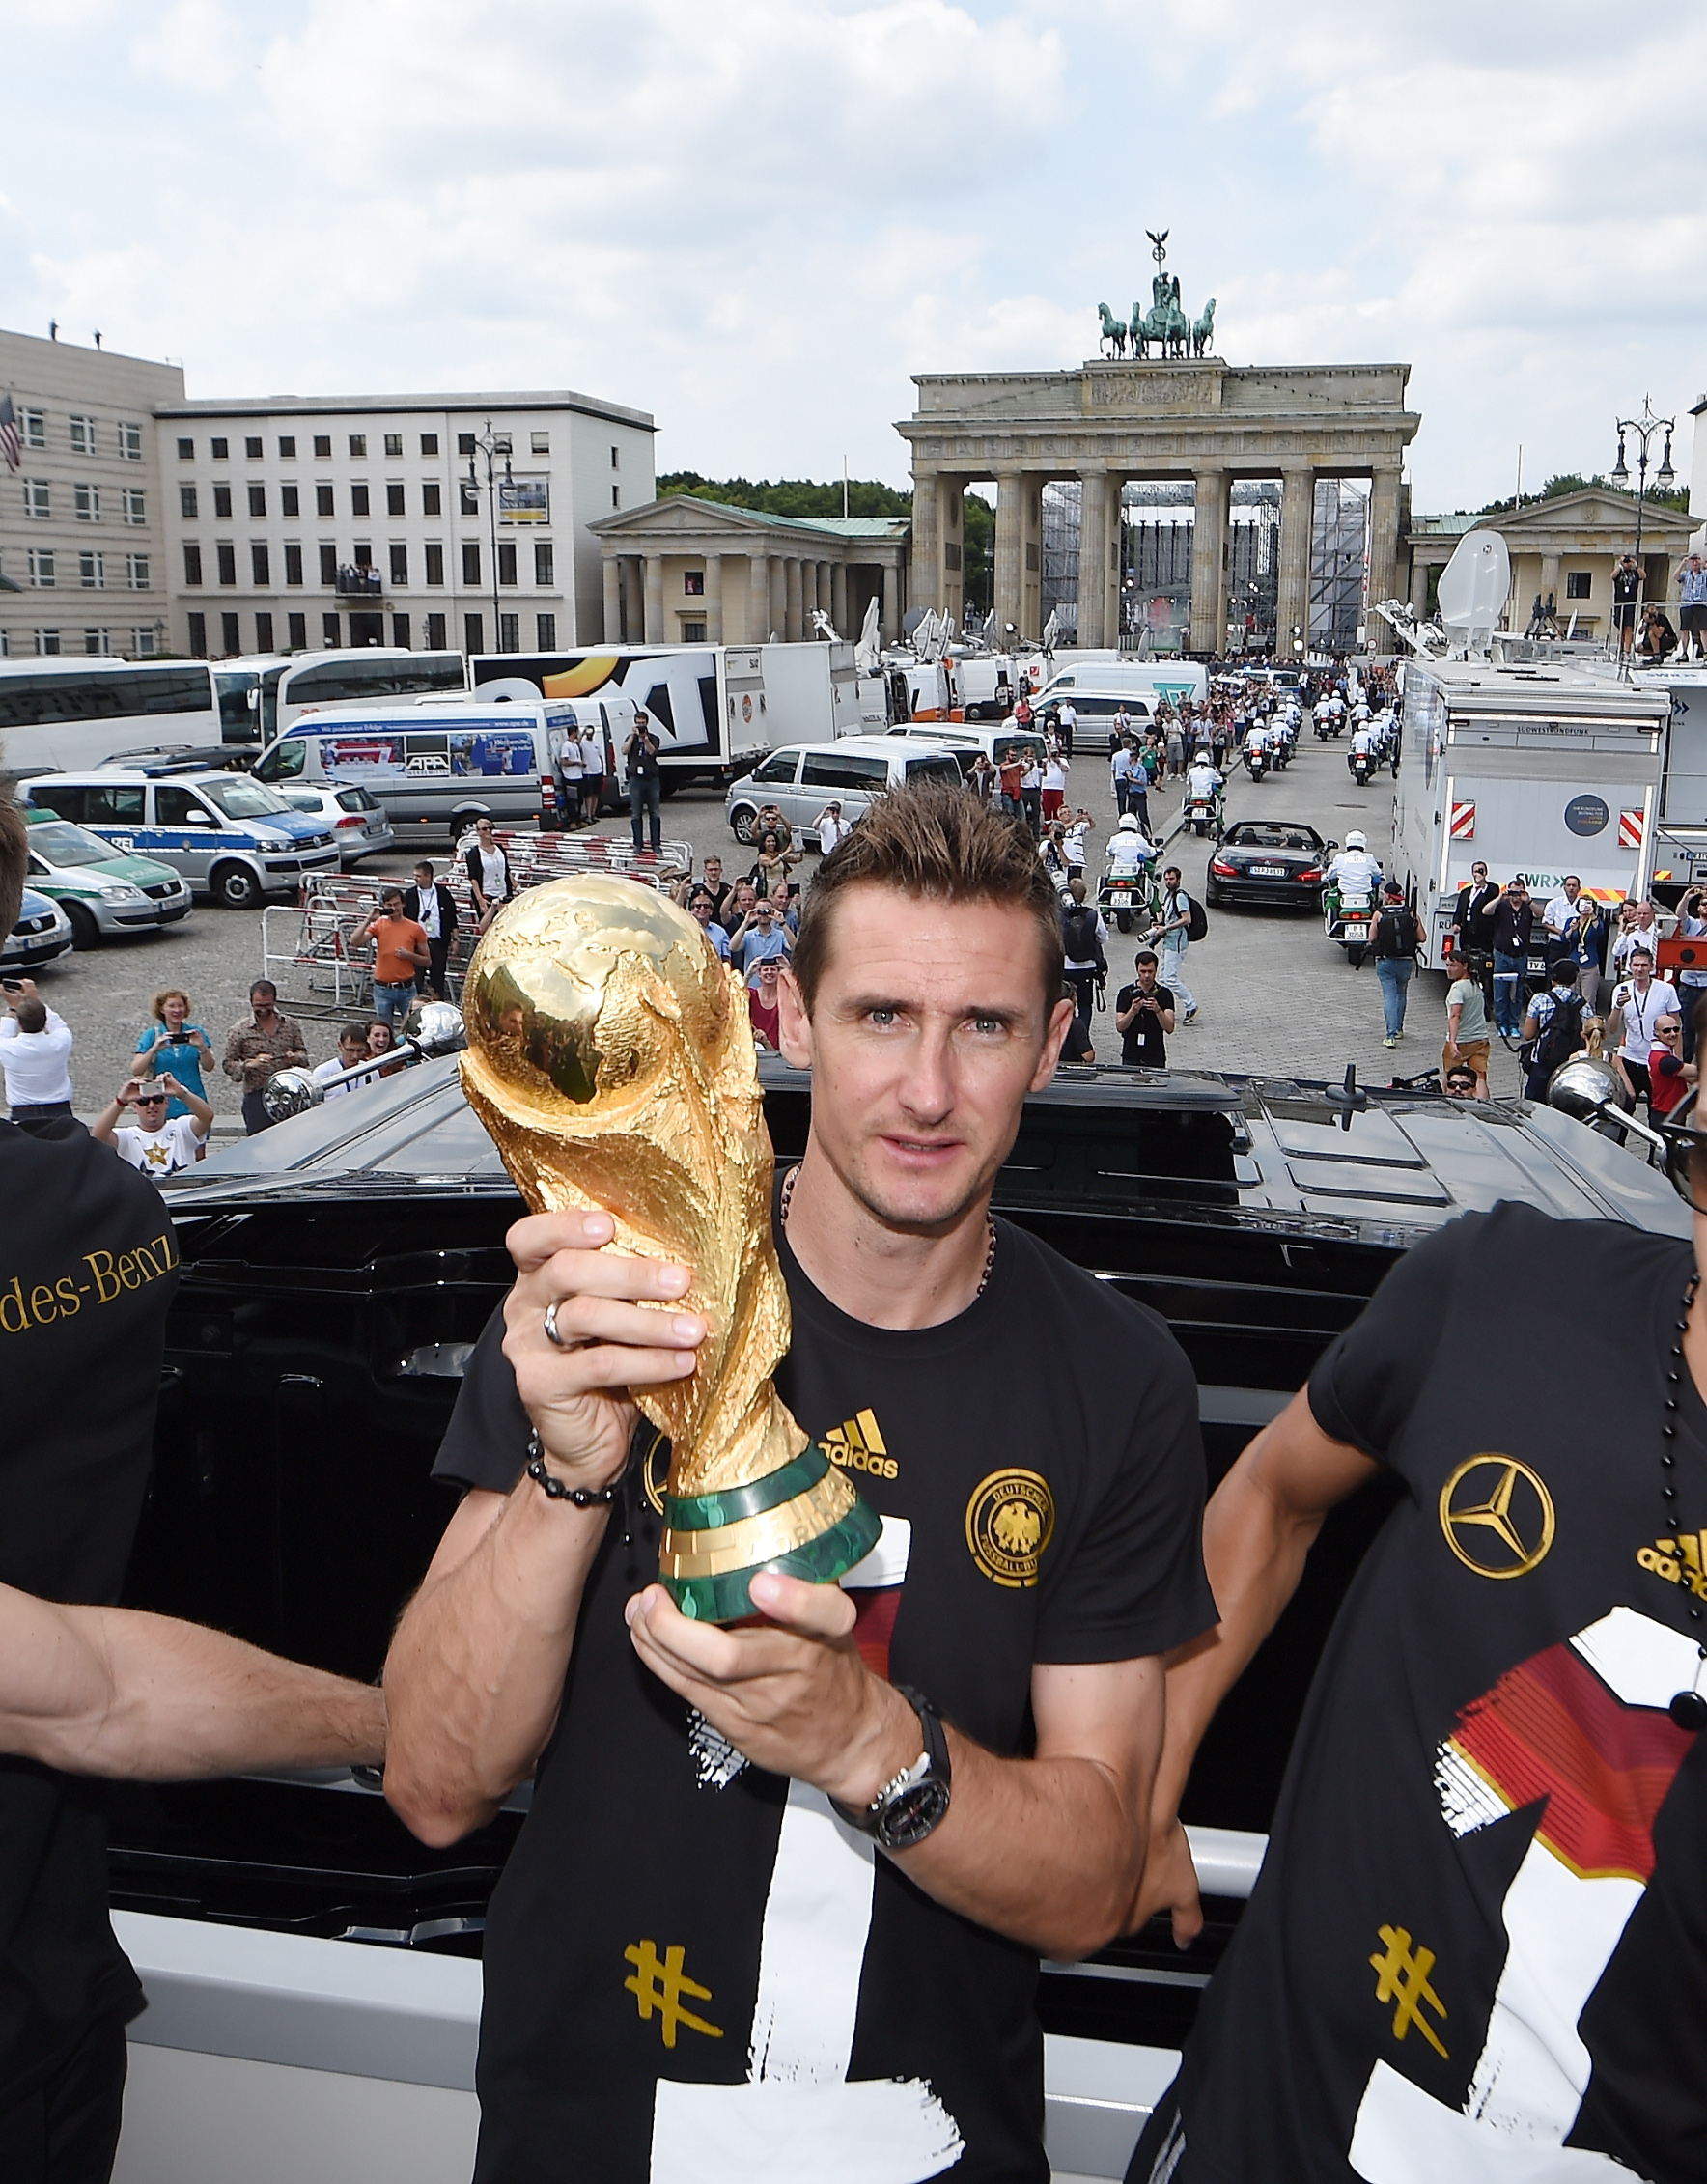 BERLIN, GERMANY - JULY 15: Miroslav Klose celebrates during the German team victory ceremony on July 15, 2014 in Berlin, Germany. Germany won the 2014 FIFA World Cup Brazil match against Argentina in Rio de Janeiro on July 13.  (Photo by Markus Gilliar - Pool /Getty Images)